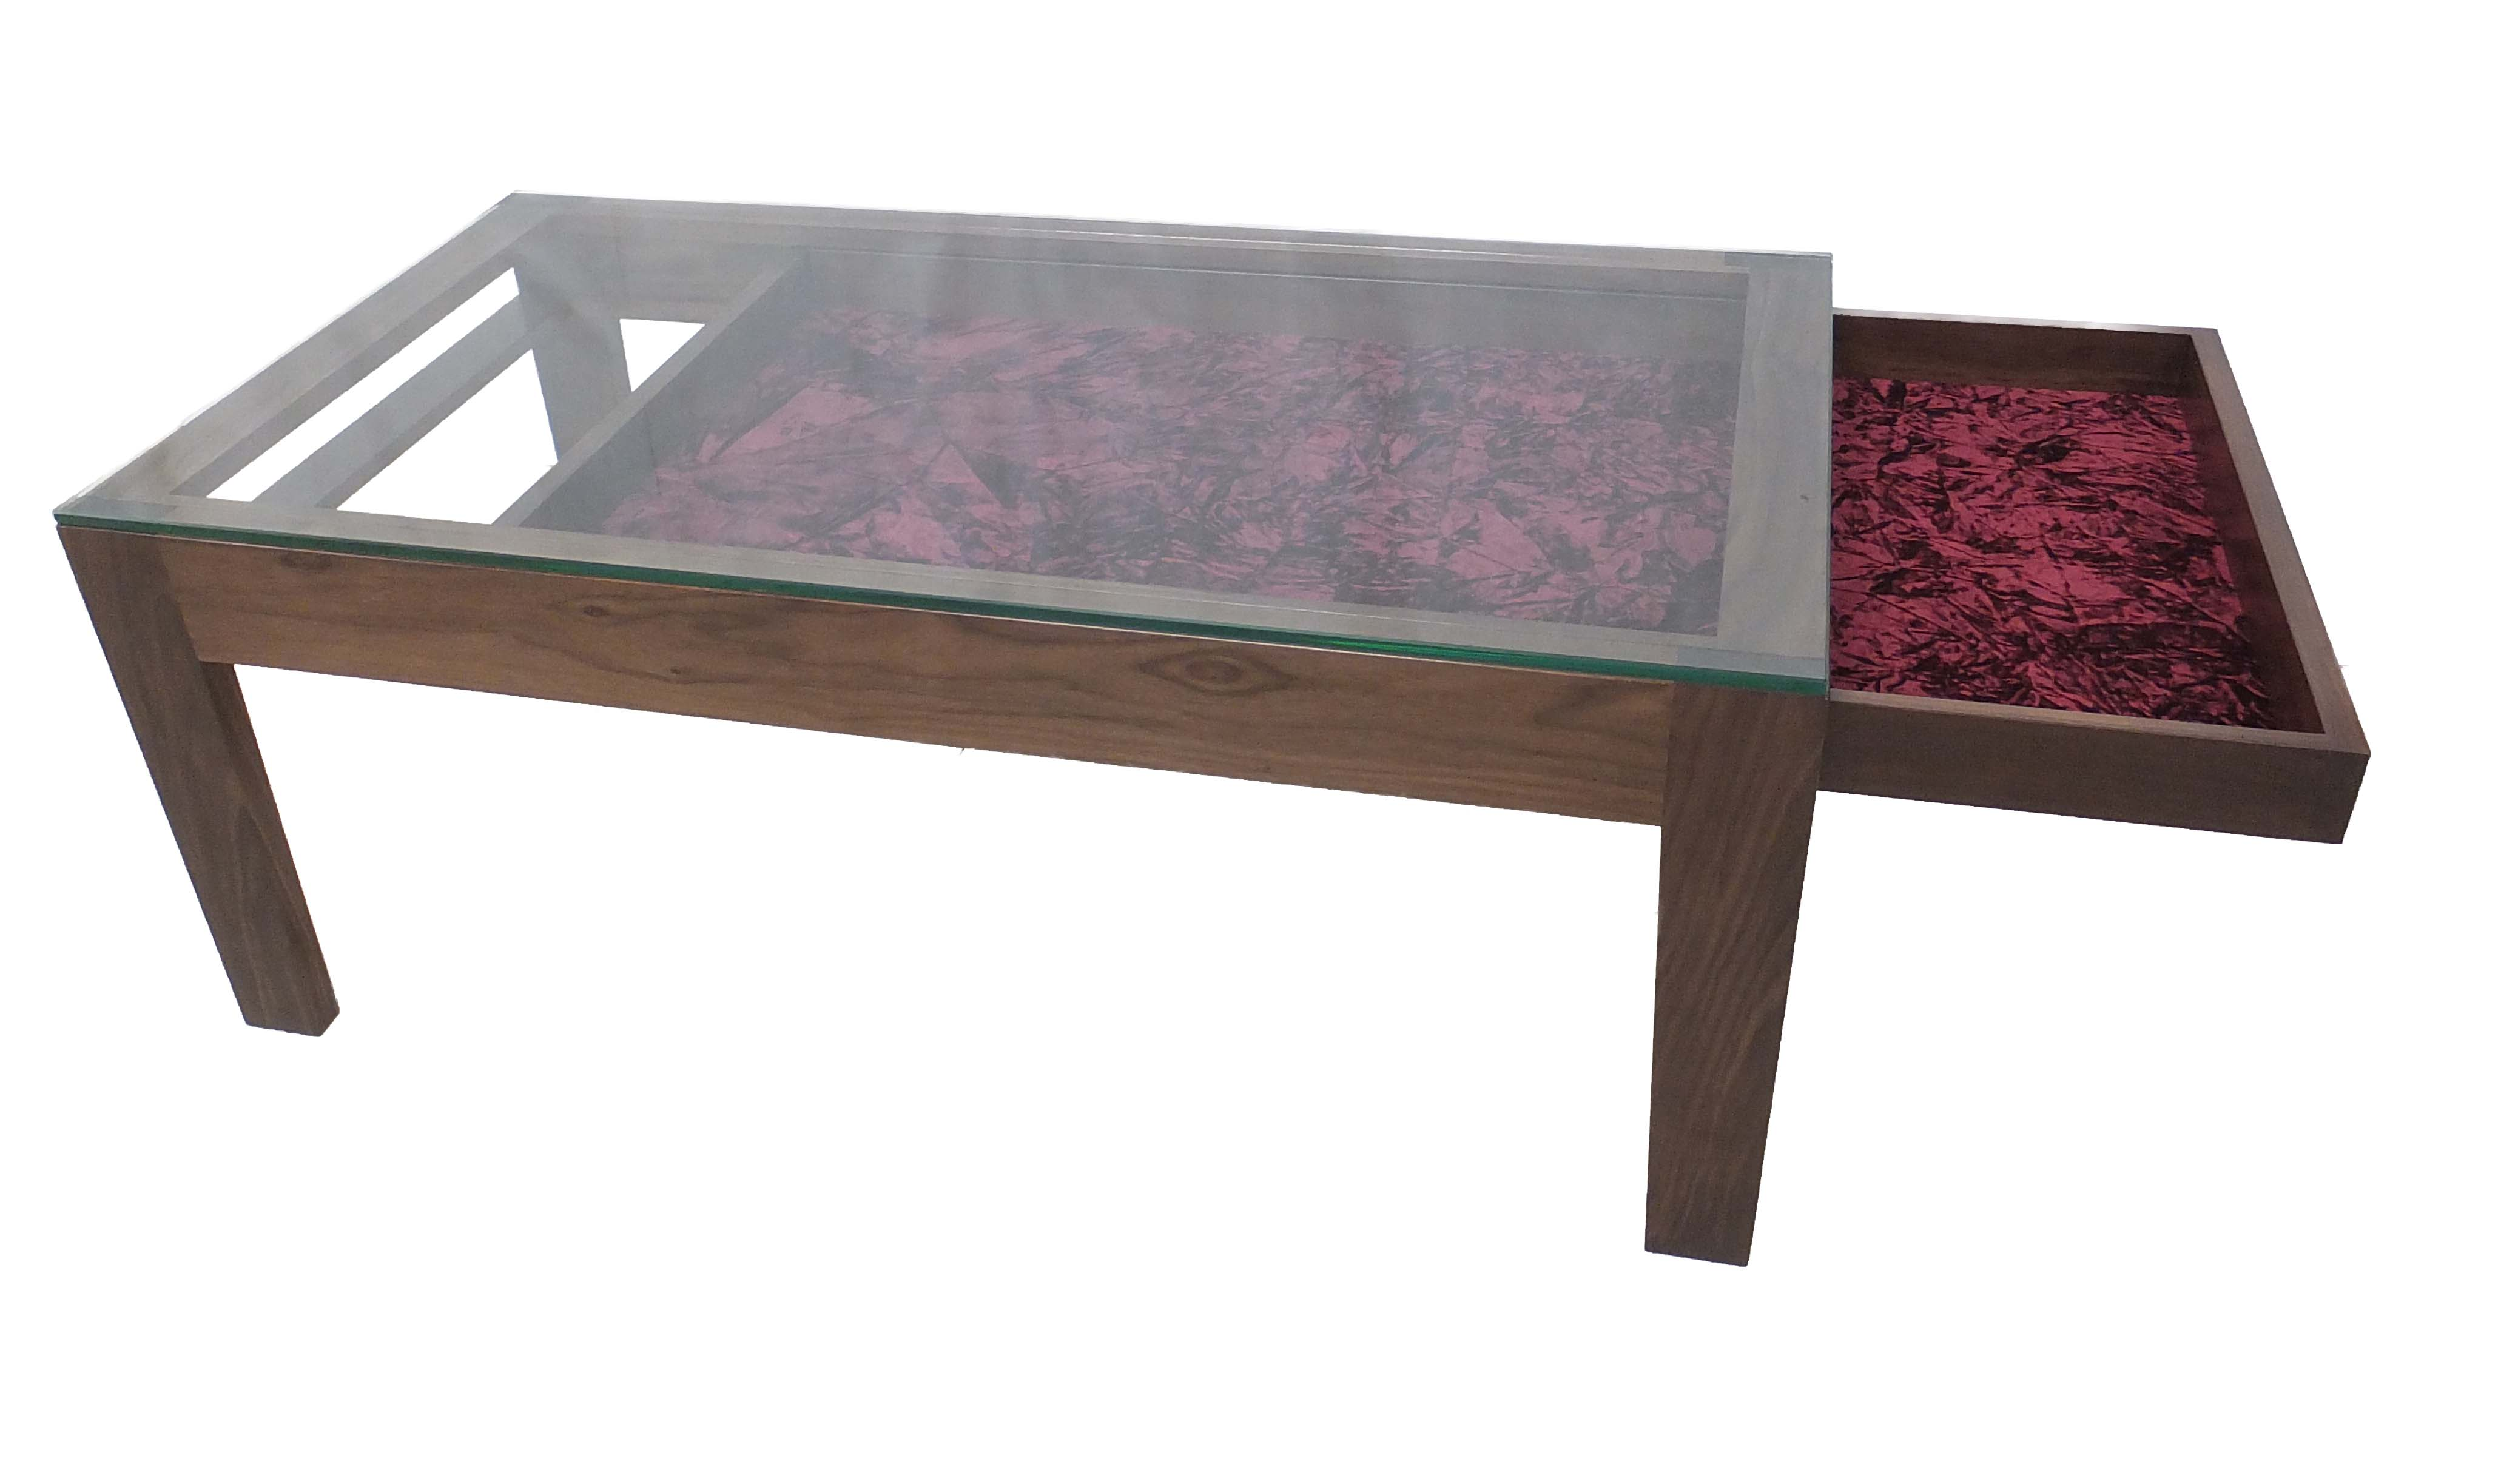 How To Make A Ottoman Coffee Table Made From Solid American Walnut With 10mm Toughened Glass Top And Sliding Drawer Lined With Crushed Velvet (View 10 of 10)